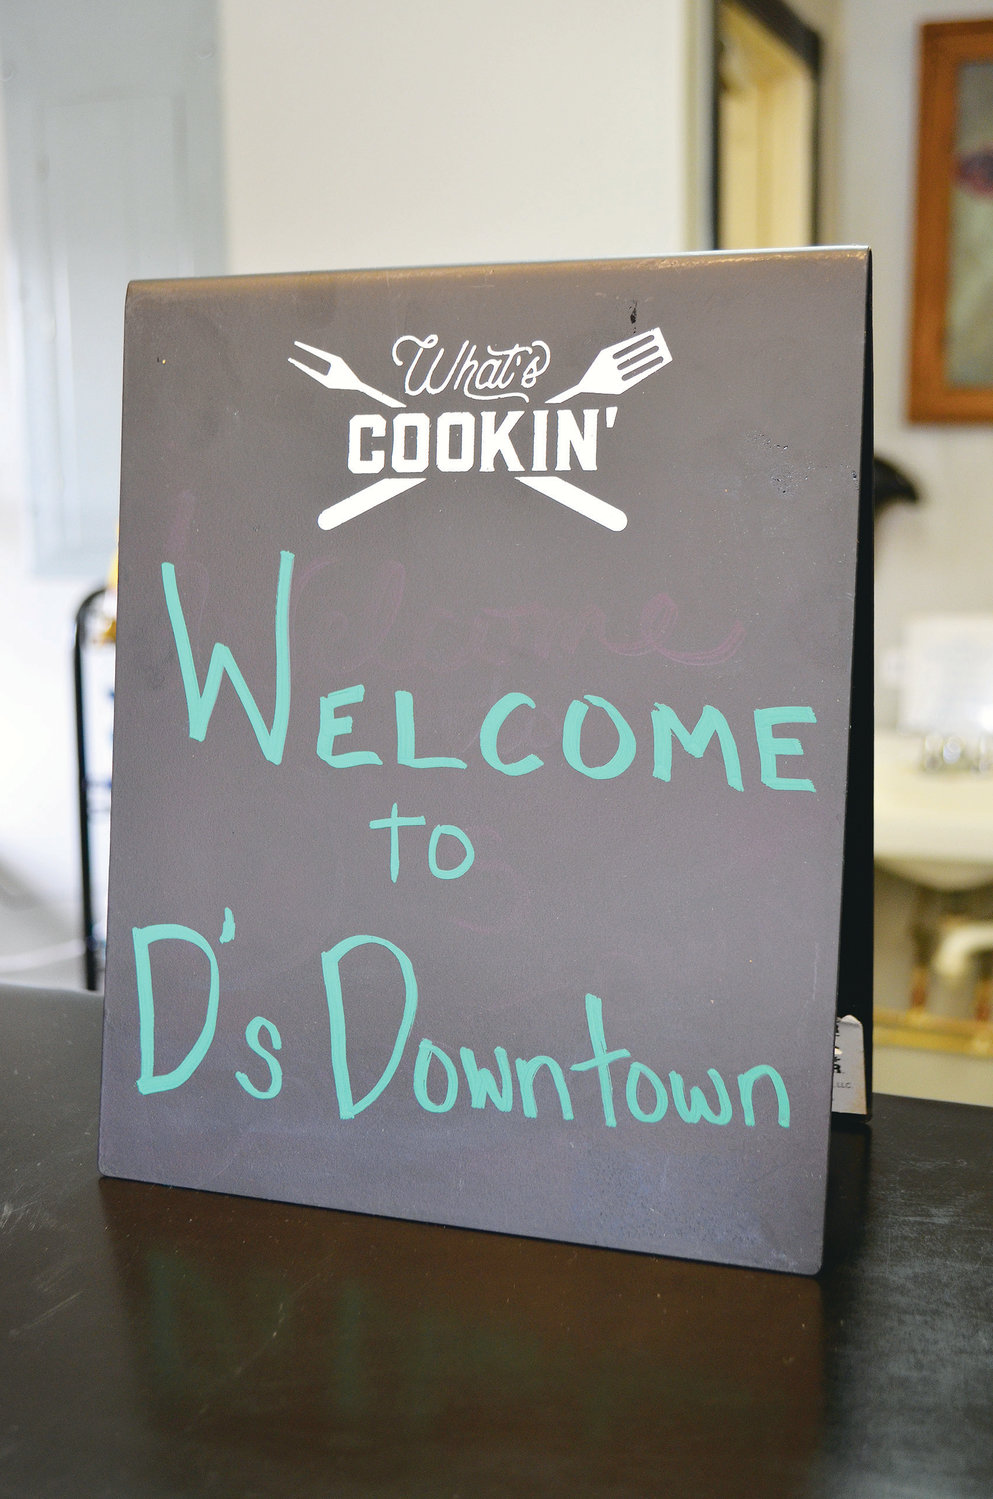 A welcoming sign for D's Downtown Barbecue in Jasper.